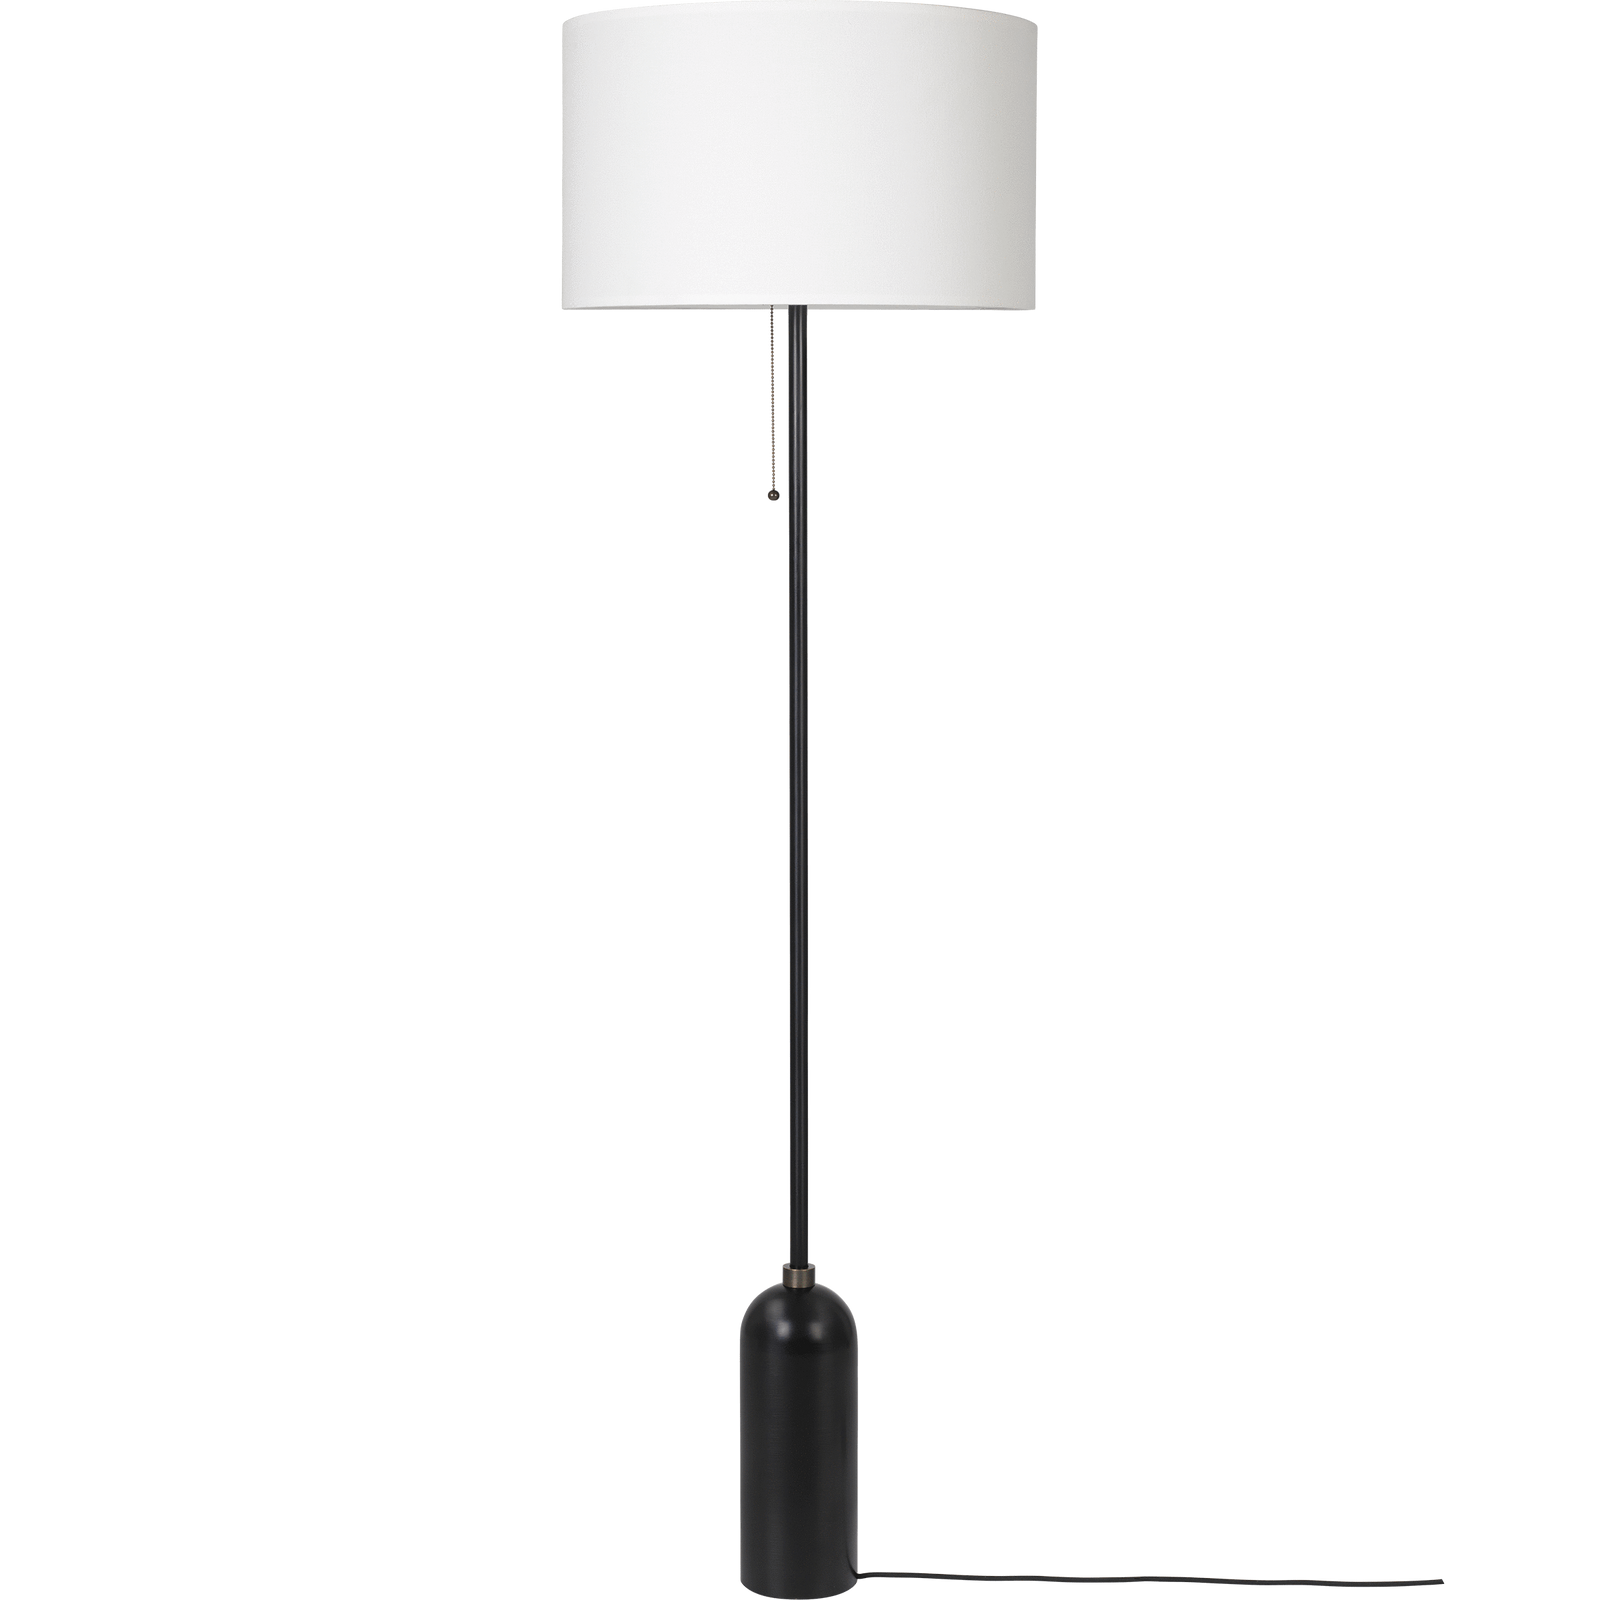 Gubi Lighting Blackened Steel / White Gravity Floor Lamp